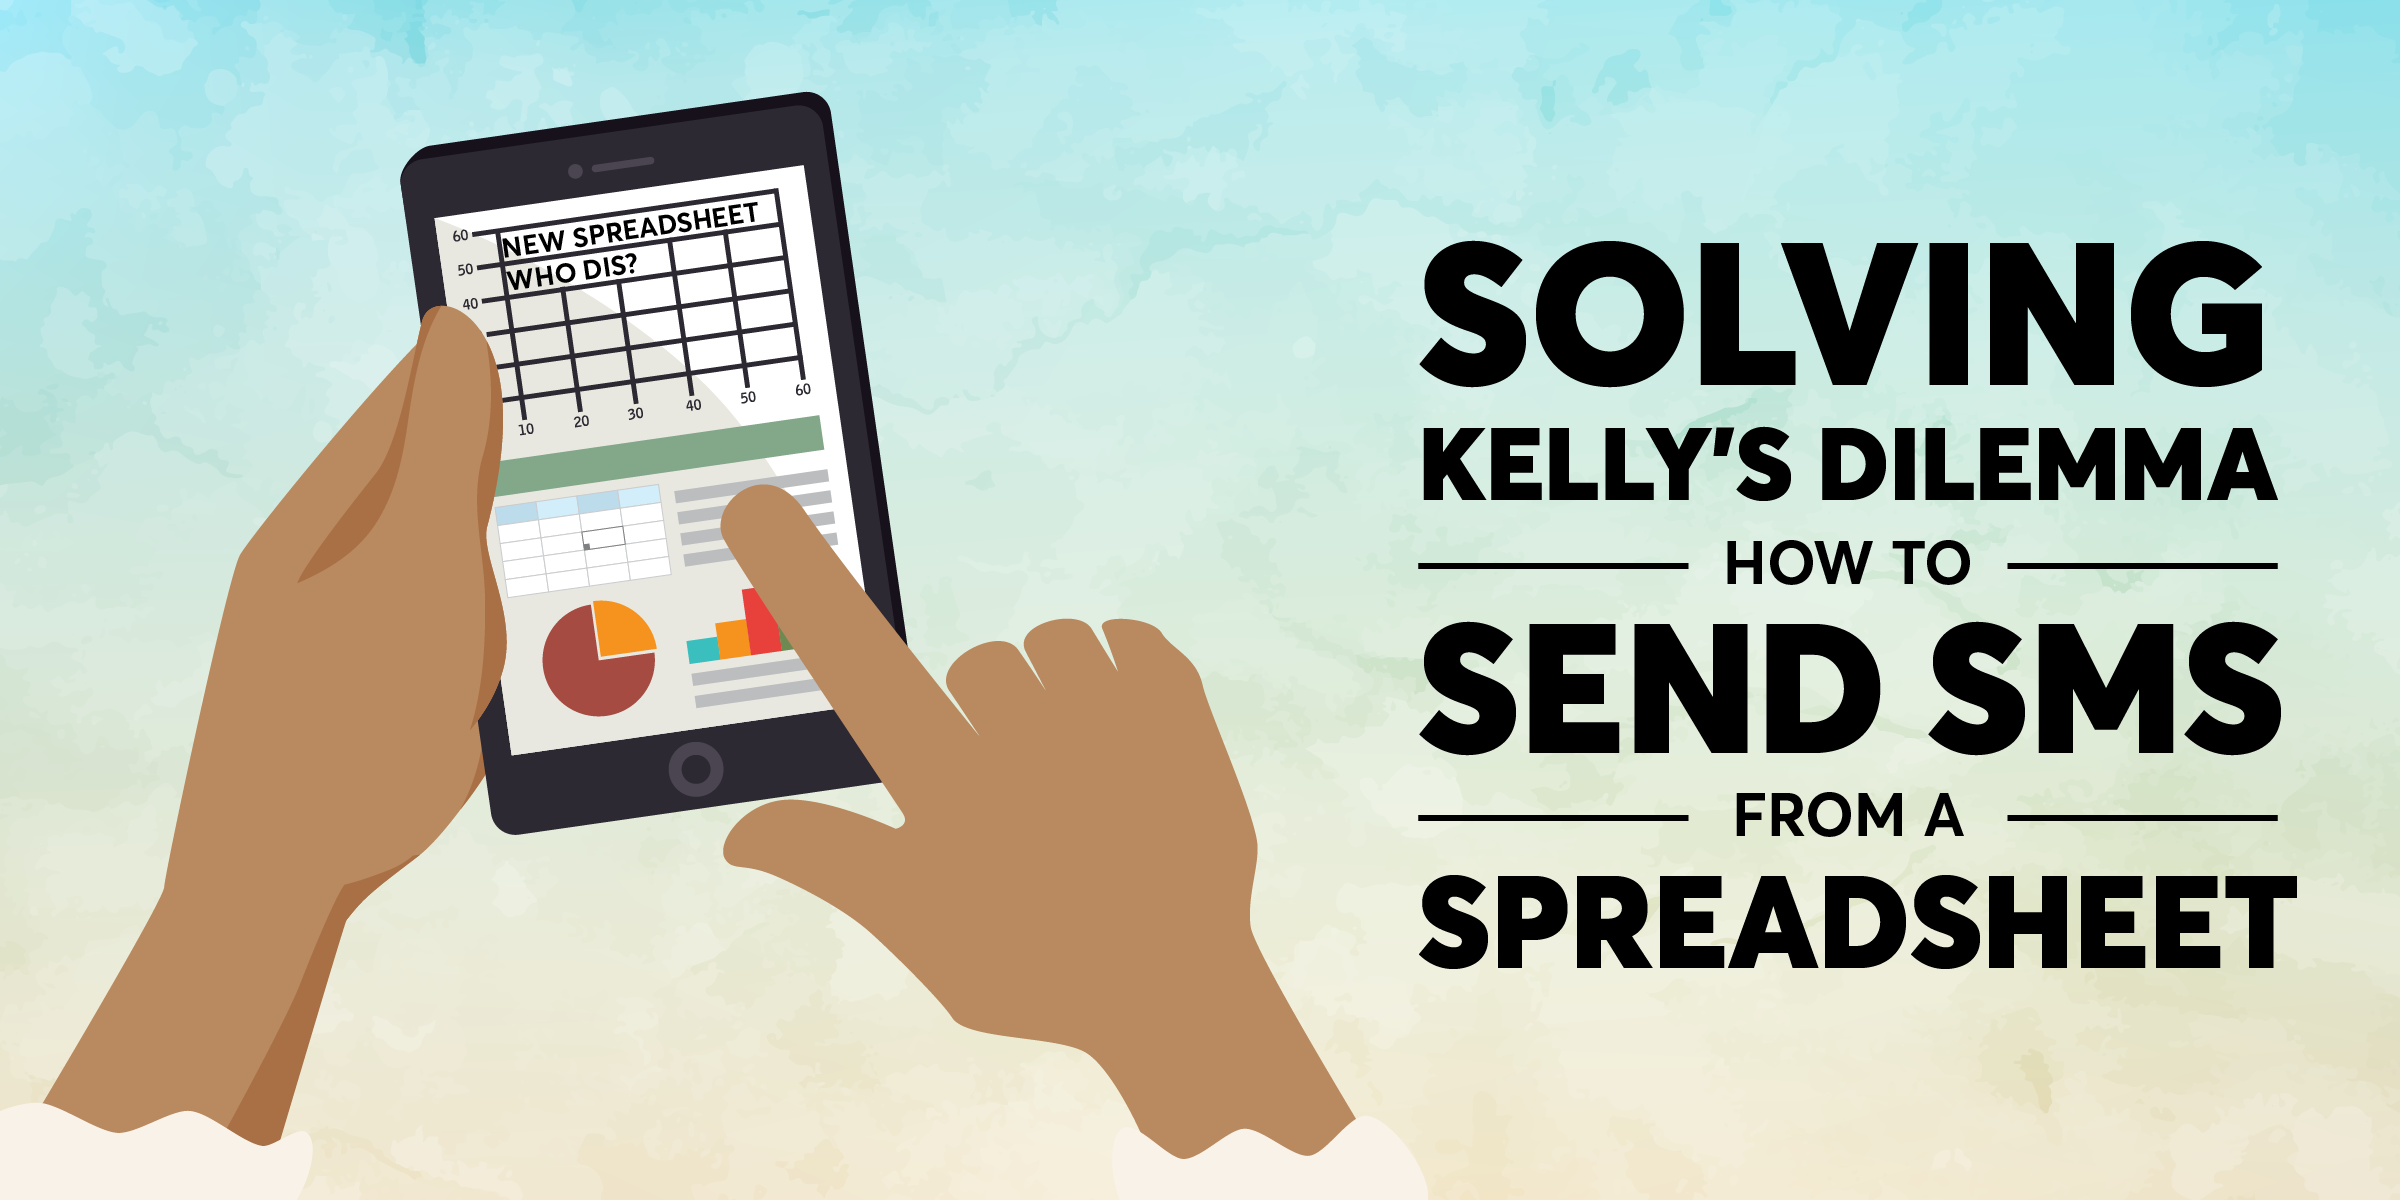 Solving Kelly's Dilemma – How to Send SMS from a Spreadsheet